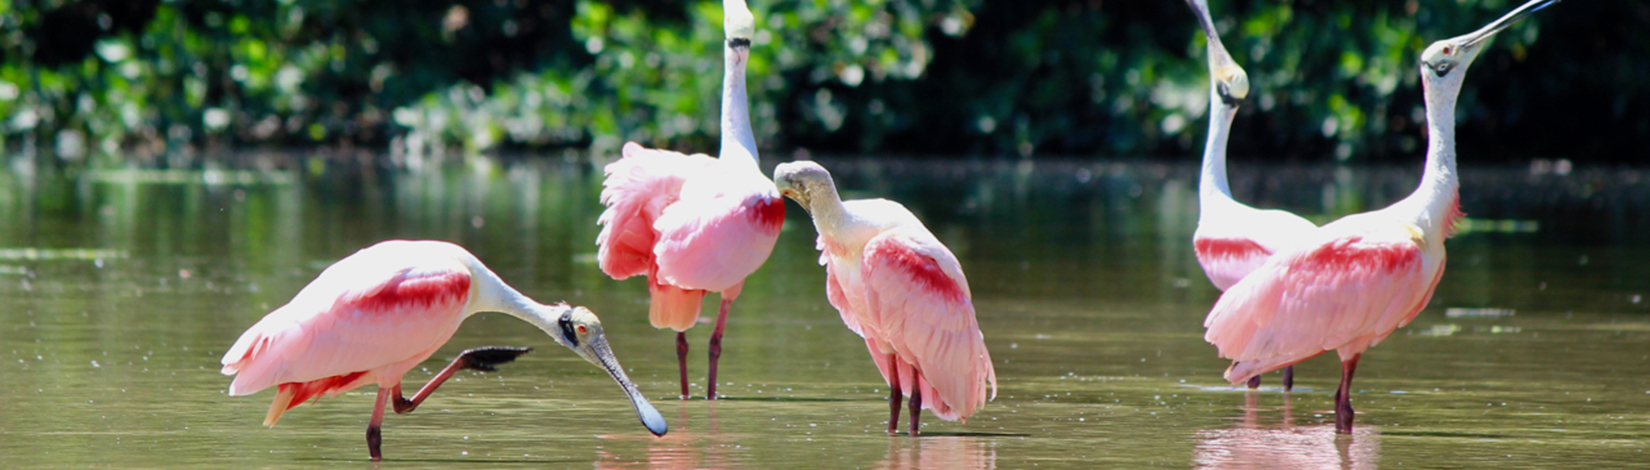 Photo of 4 spoonbills in shallow water